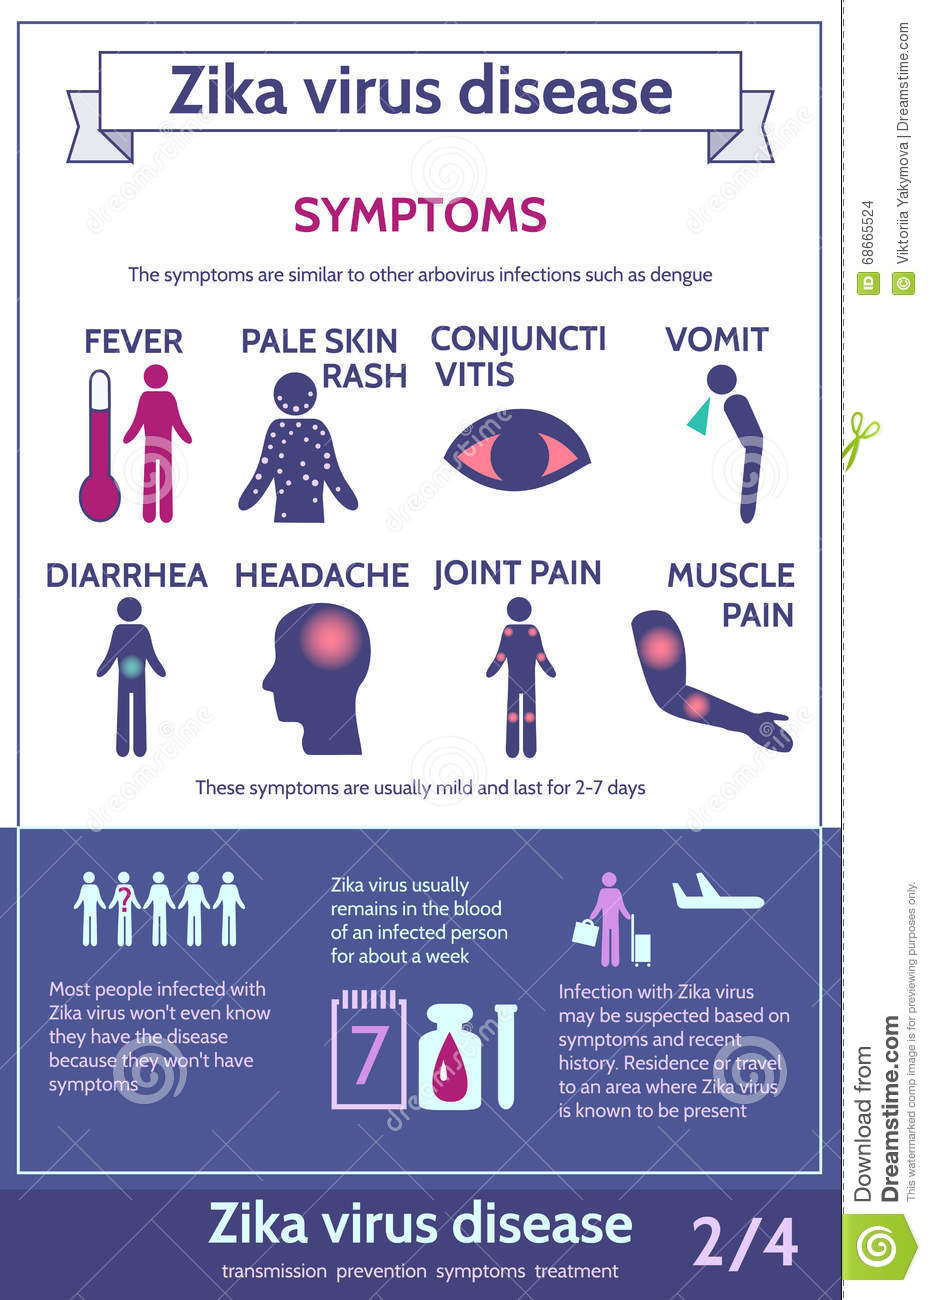 zika virus infographic with icons and text information about symptoms of illness health care